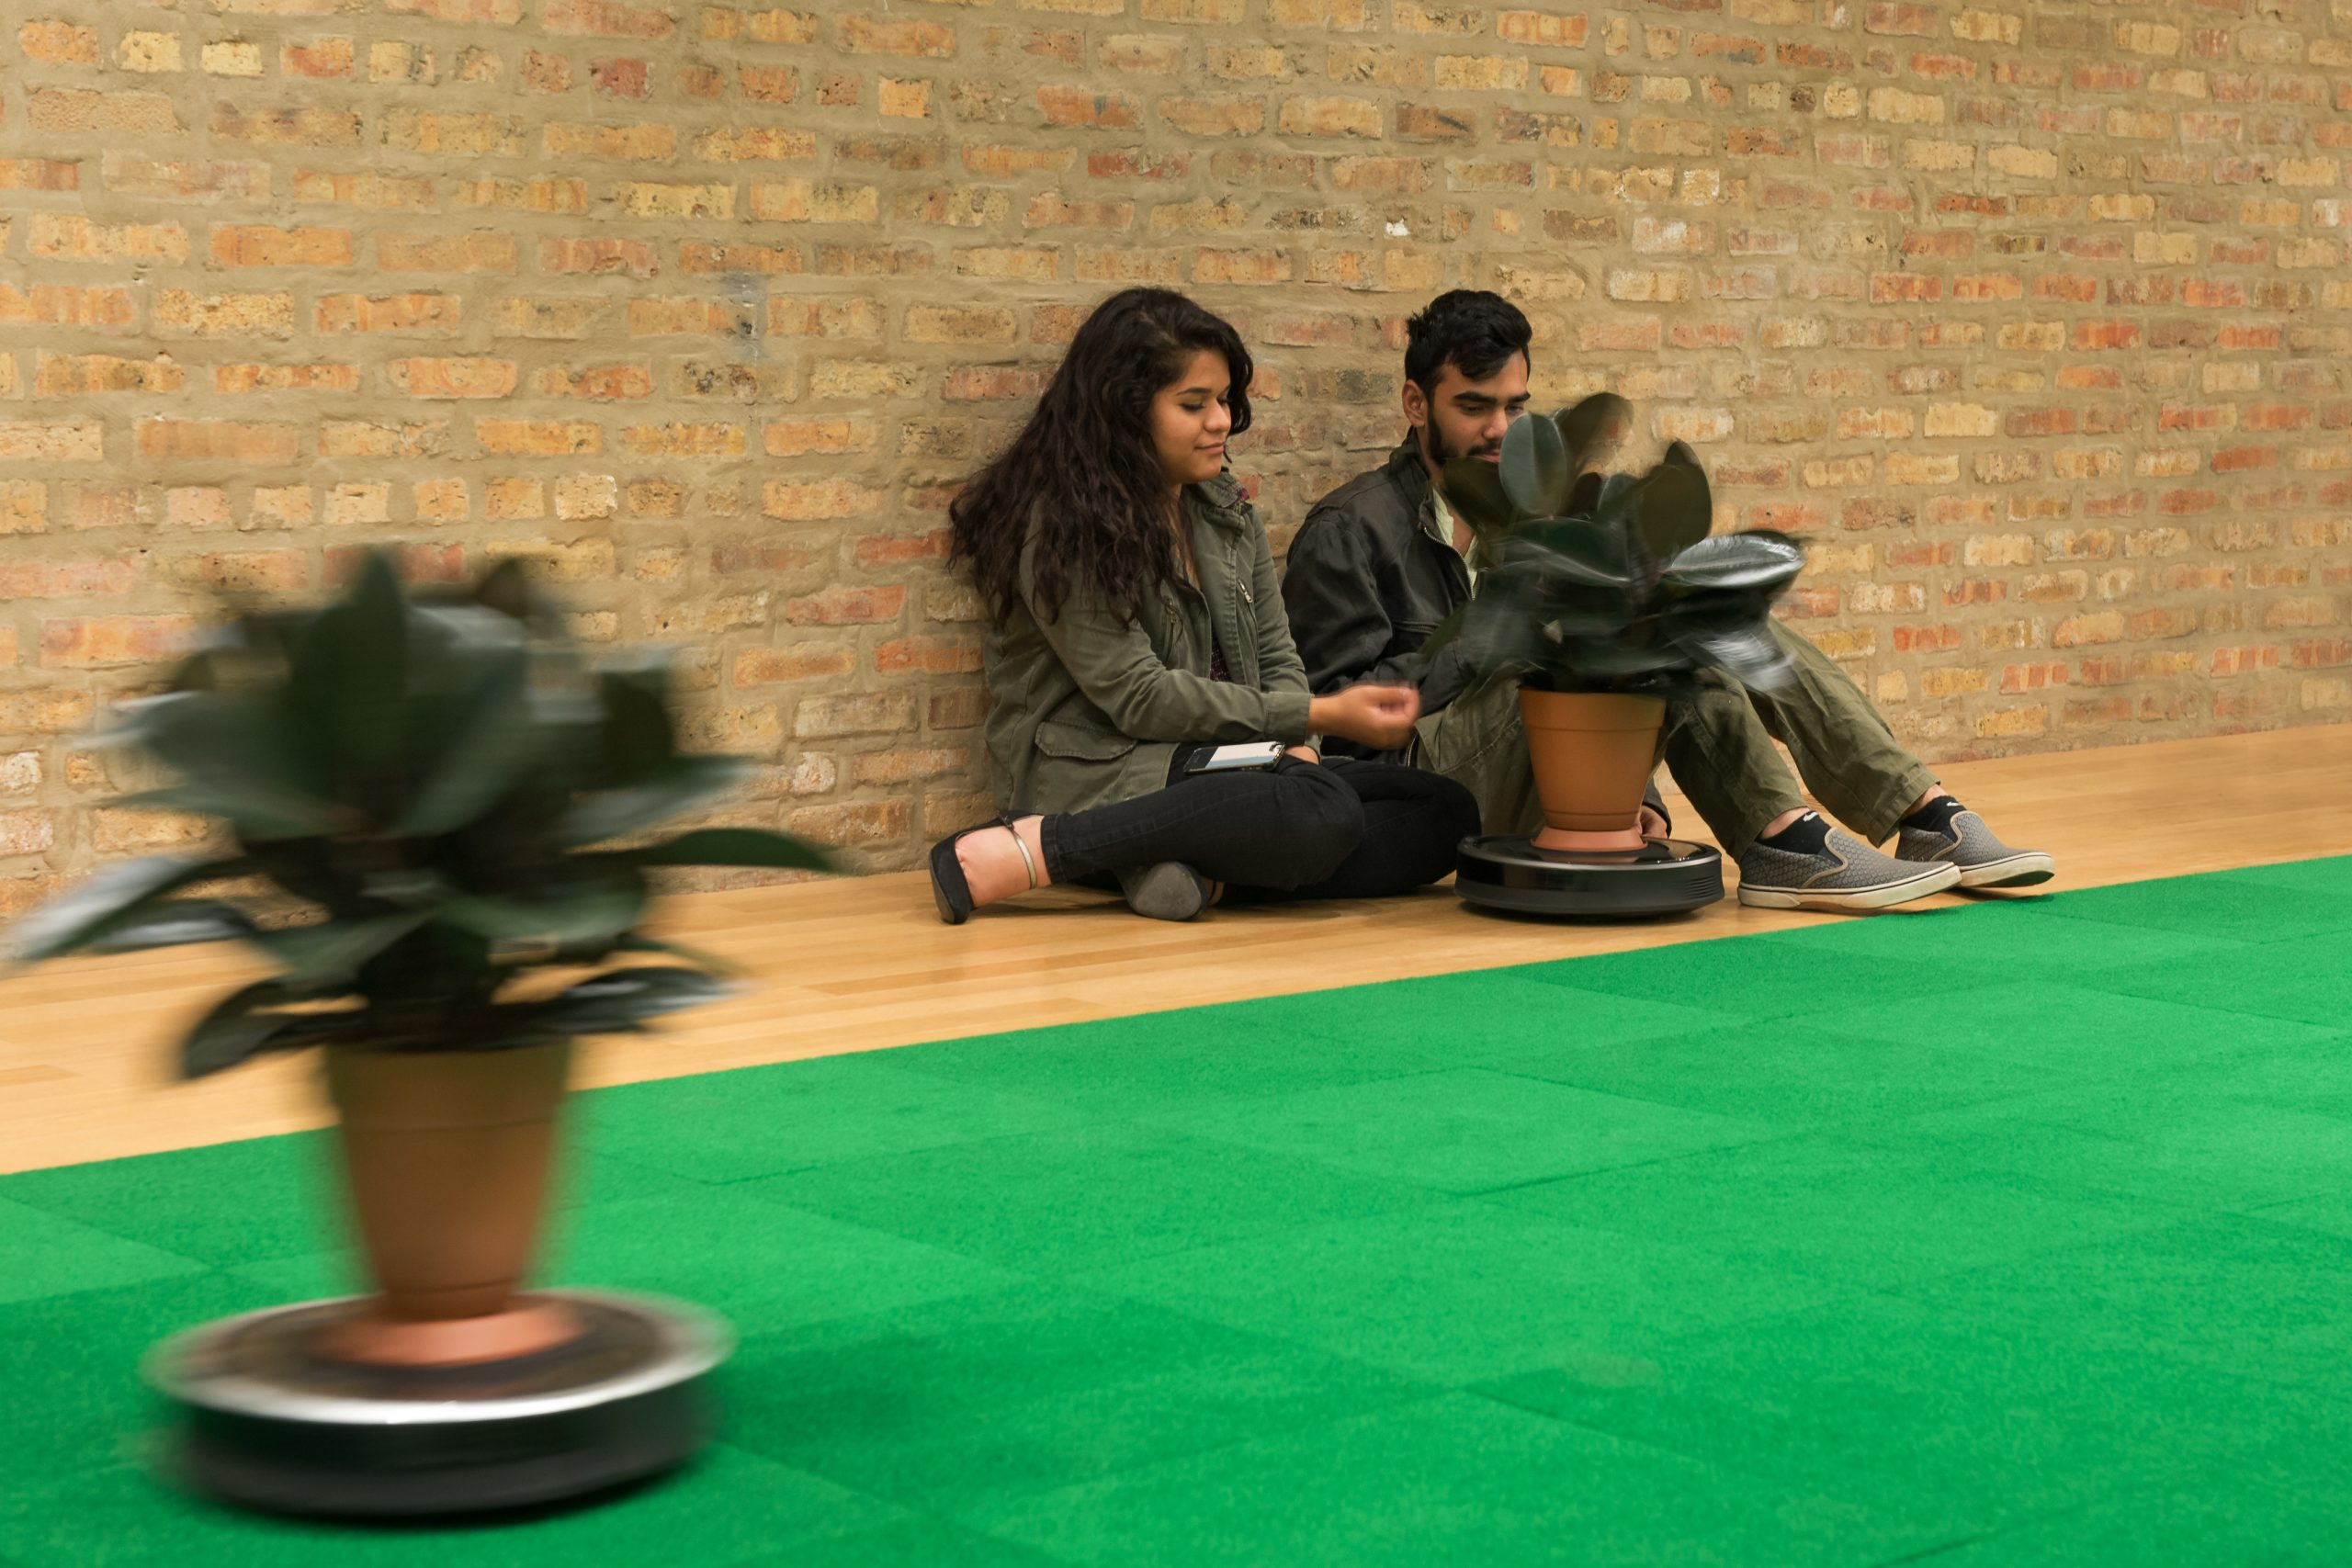 Two moving roombas with a rubber tree on top and two viewers sitting and interacting with one of the roombas